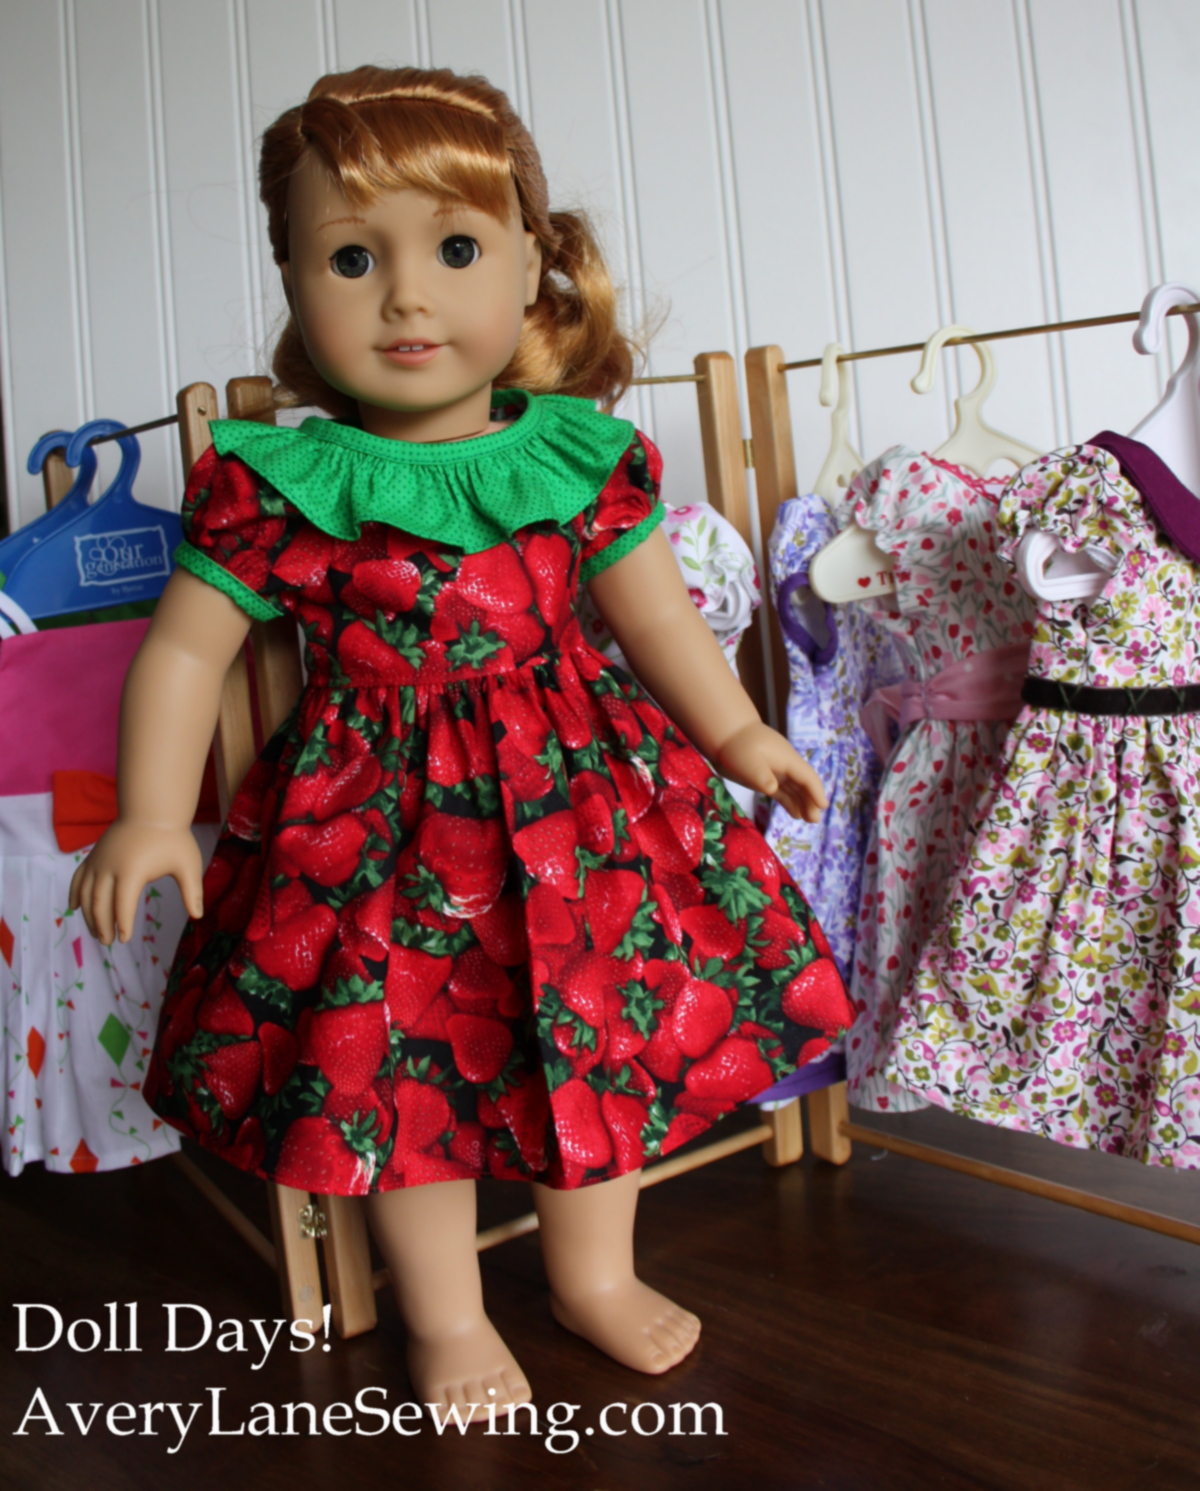 Doll Days! Blog Tour + Giveaway